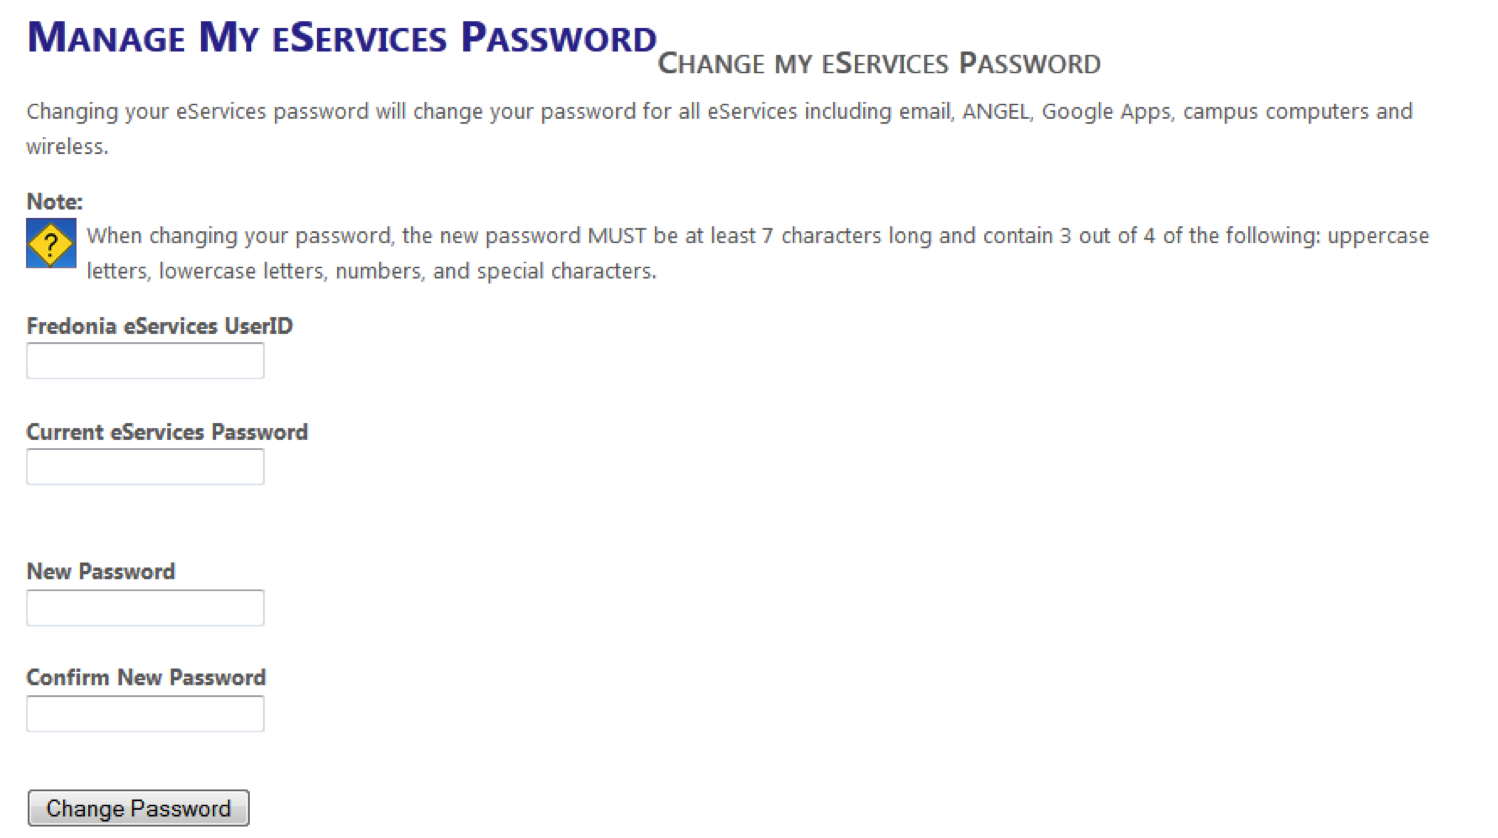 Manage My eServices Password